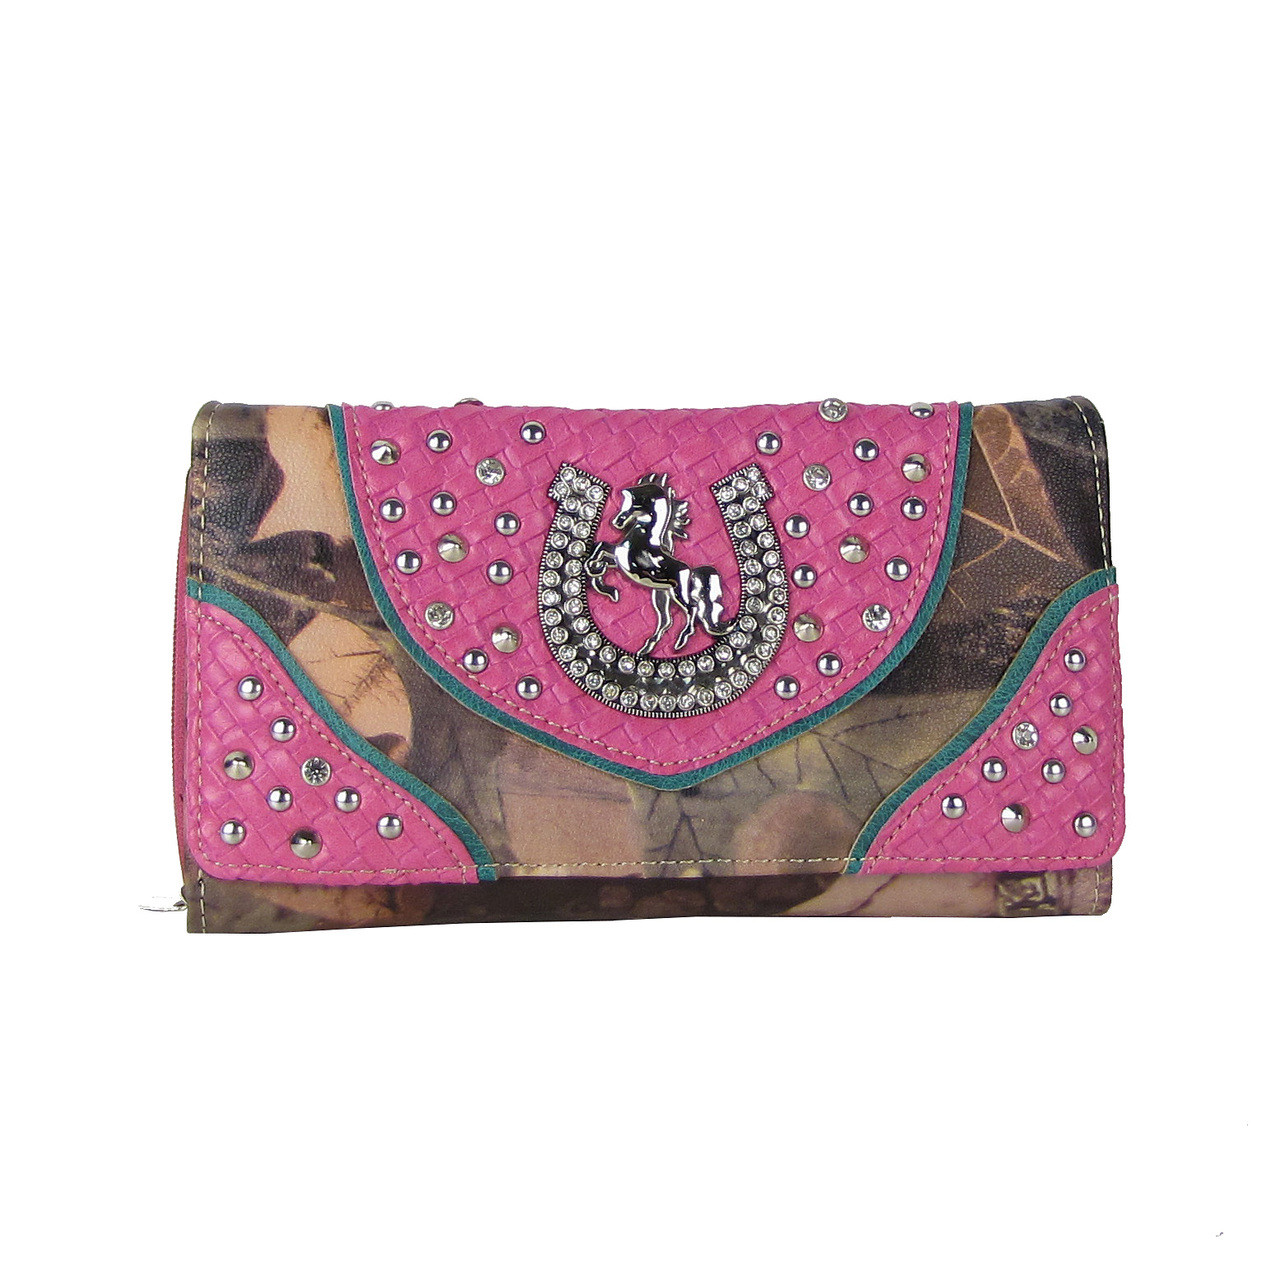 PINK WESTERN STUDDED MOSSY CAMO HORSESHOE LOOK CHECKBOOK WALLET CB1-0426PNK